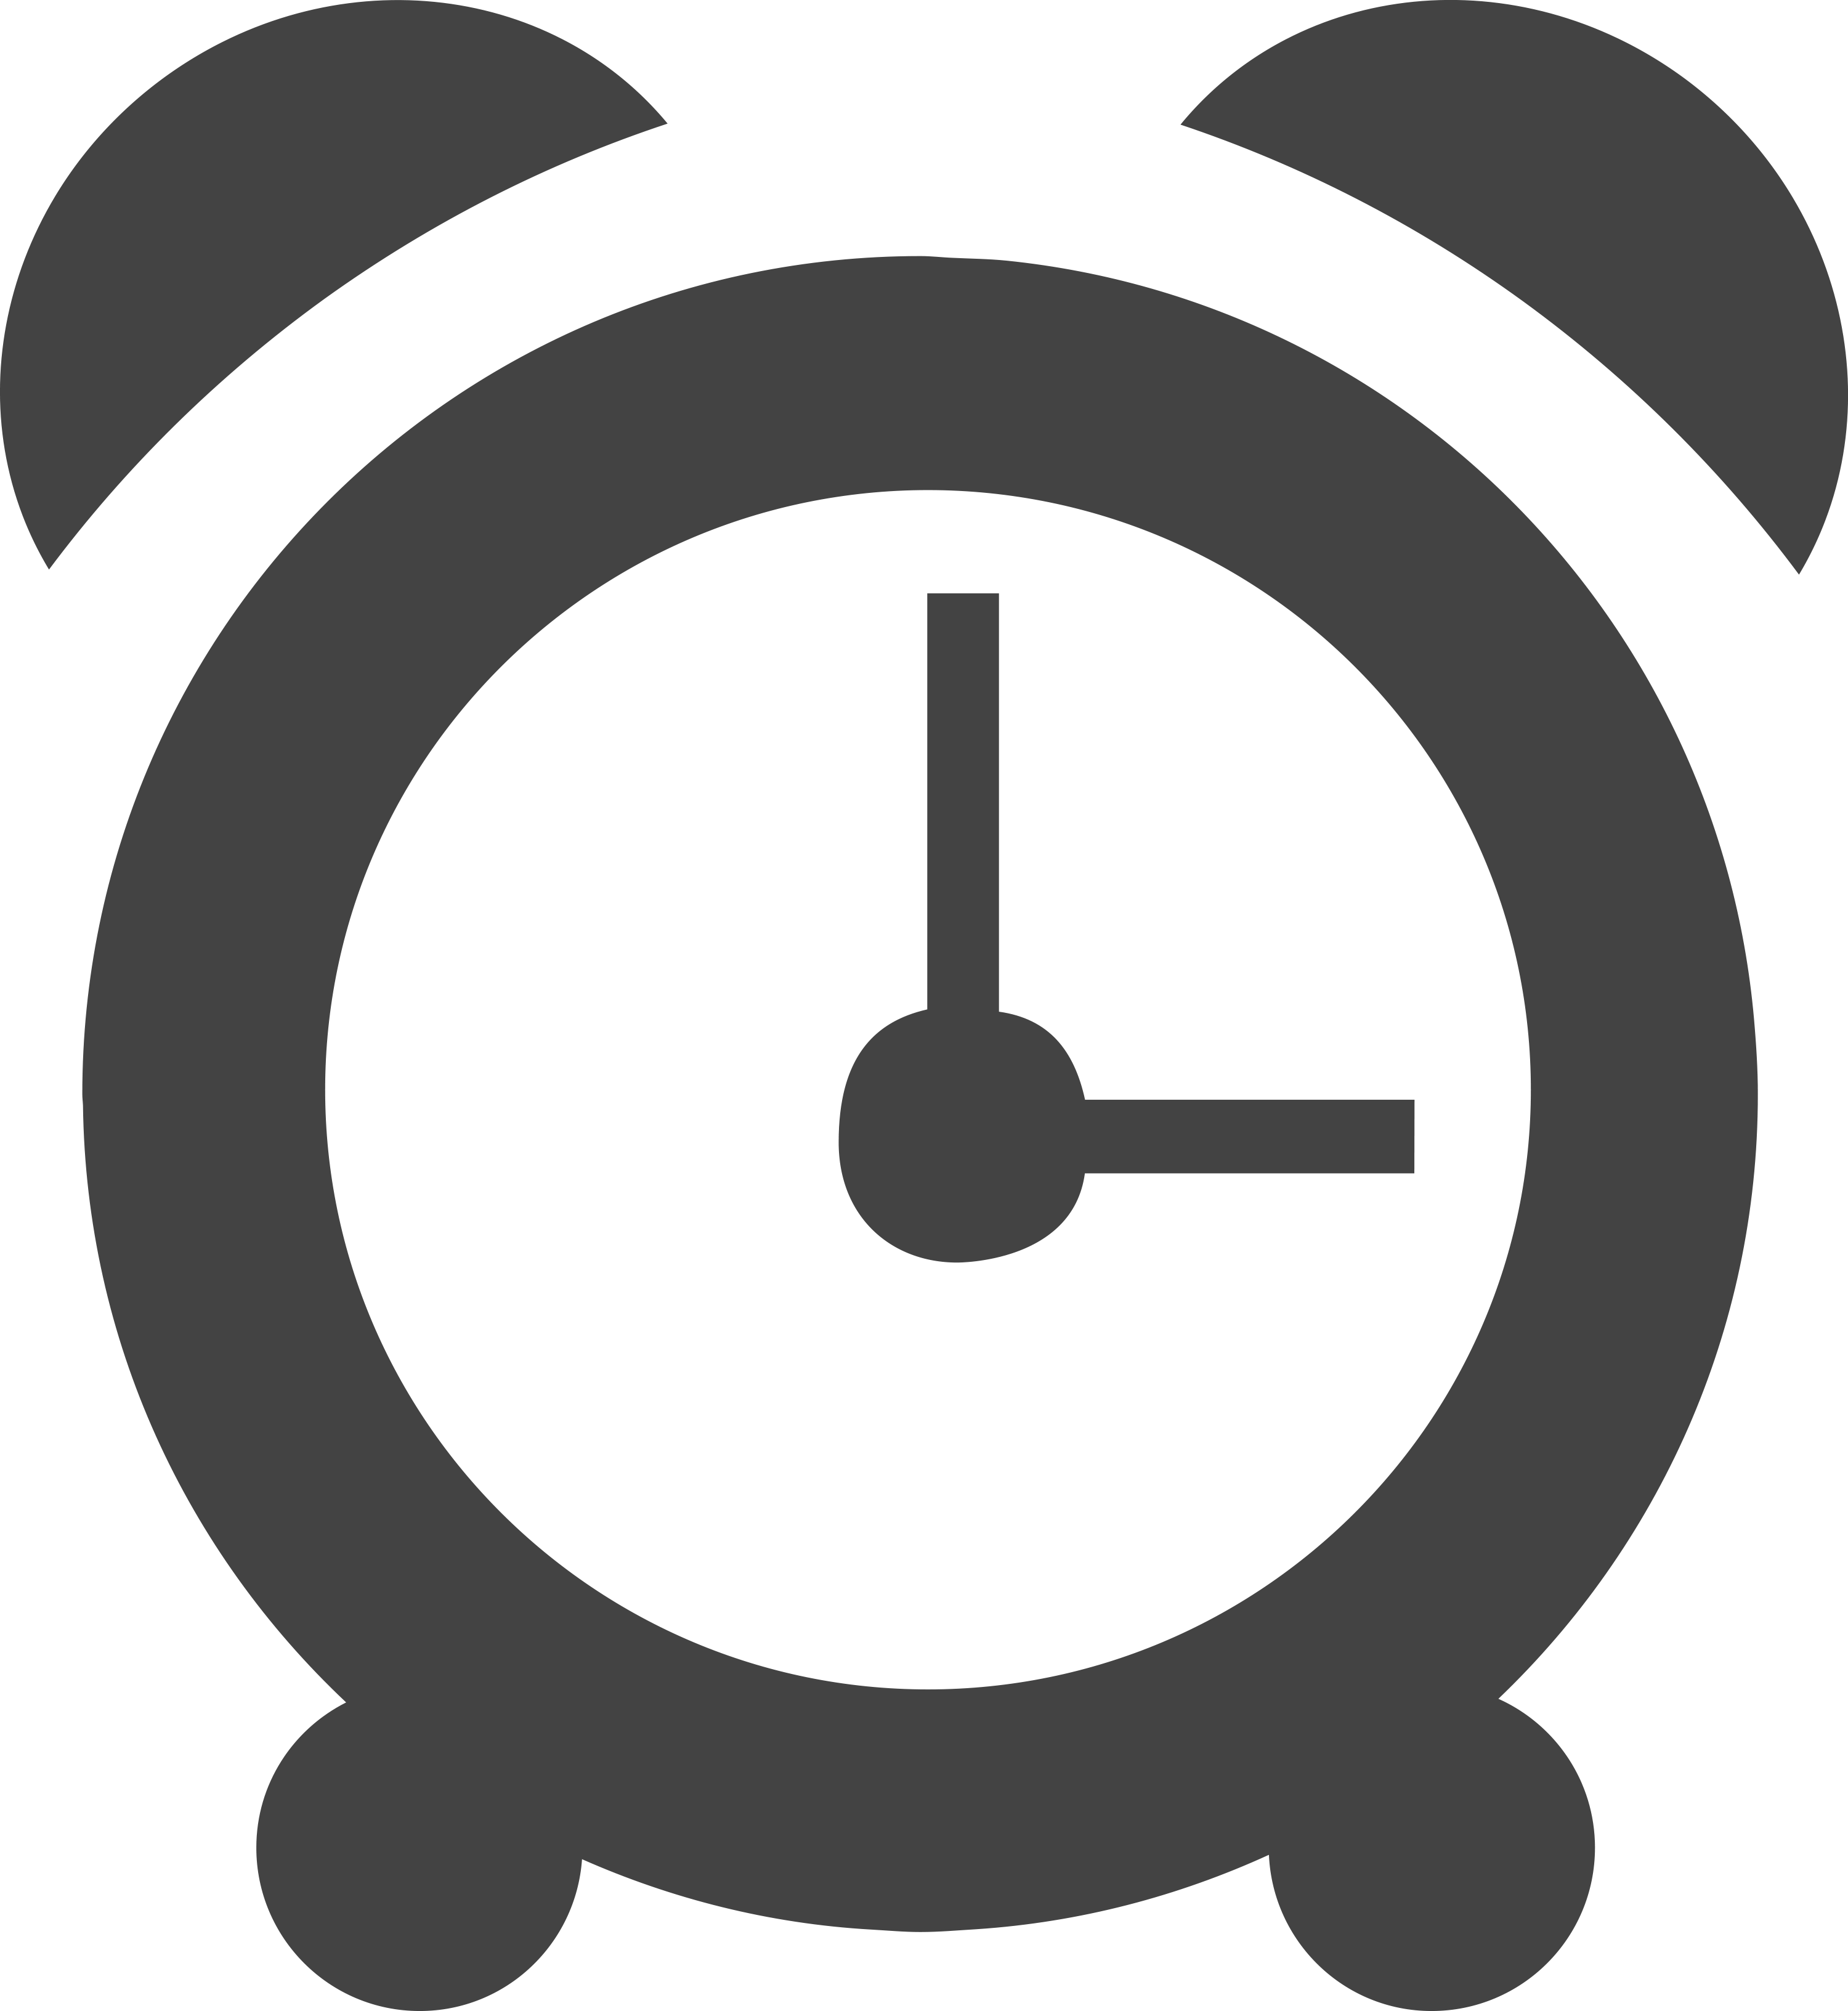 alarm-clock-glyph-icon_zkCuc2UO.png